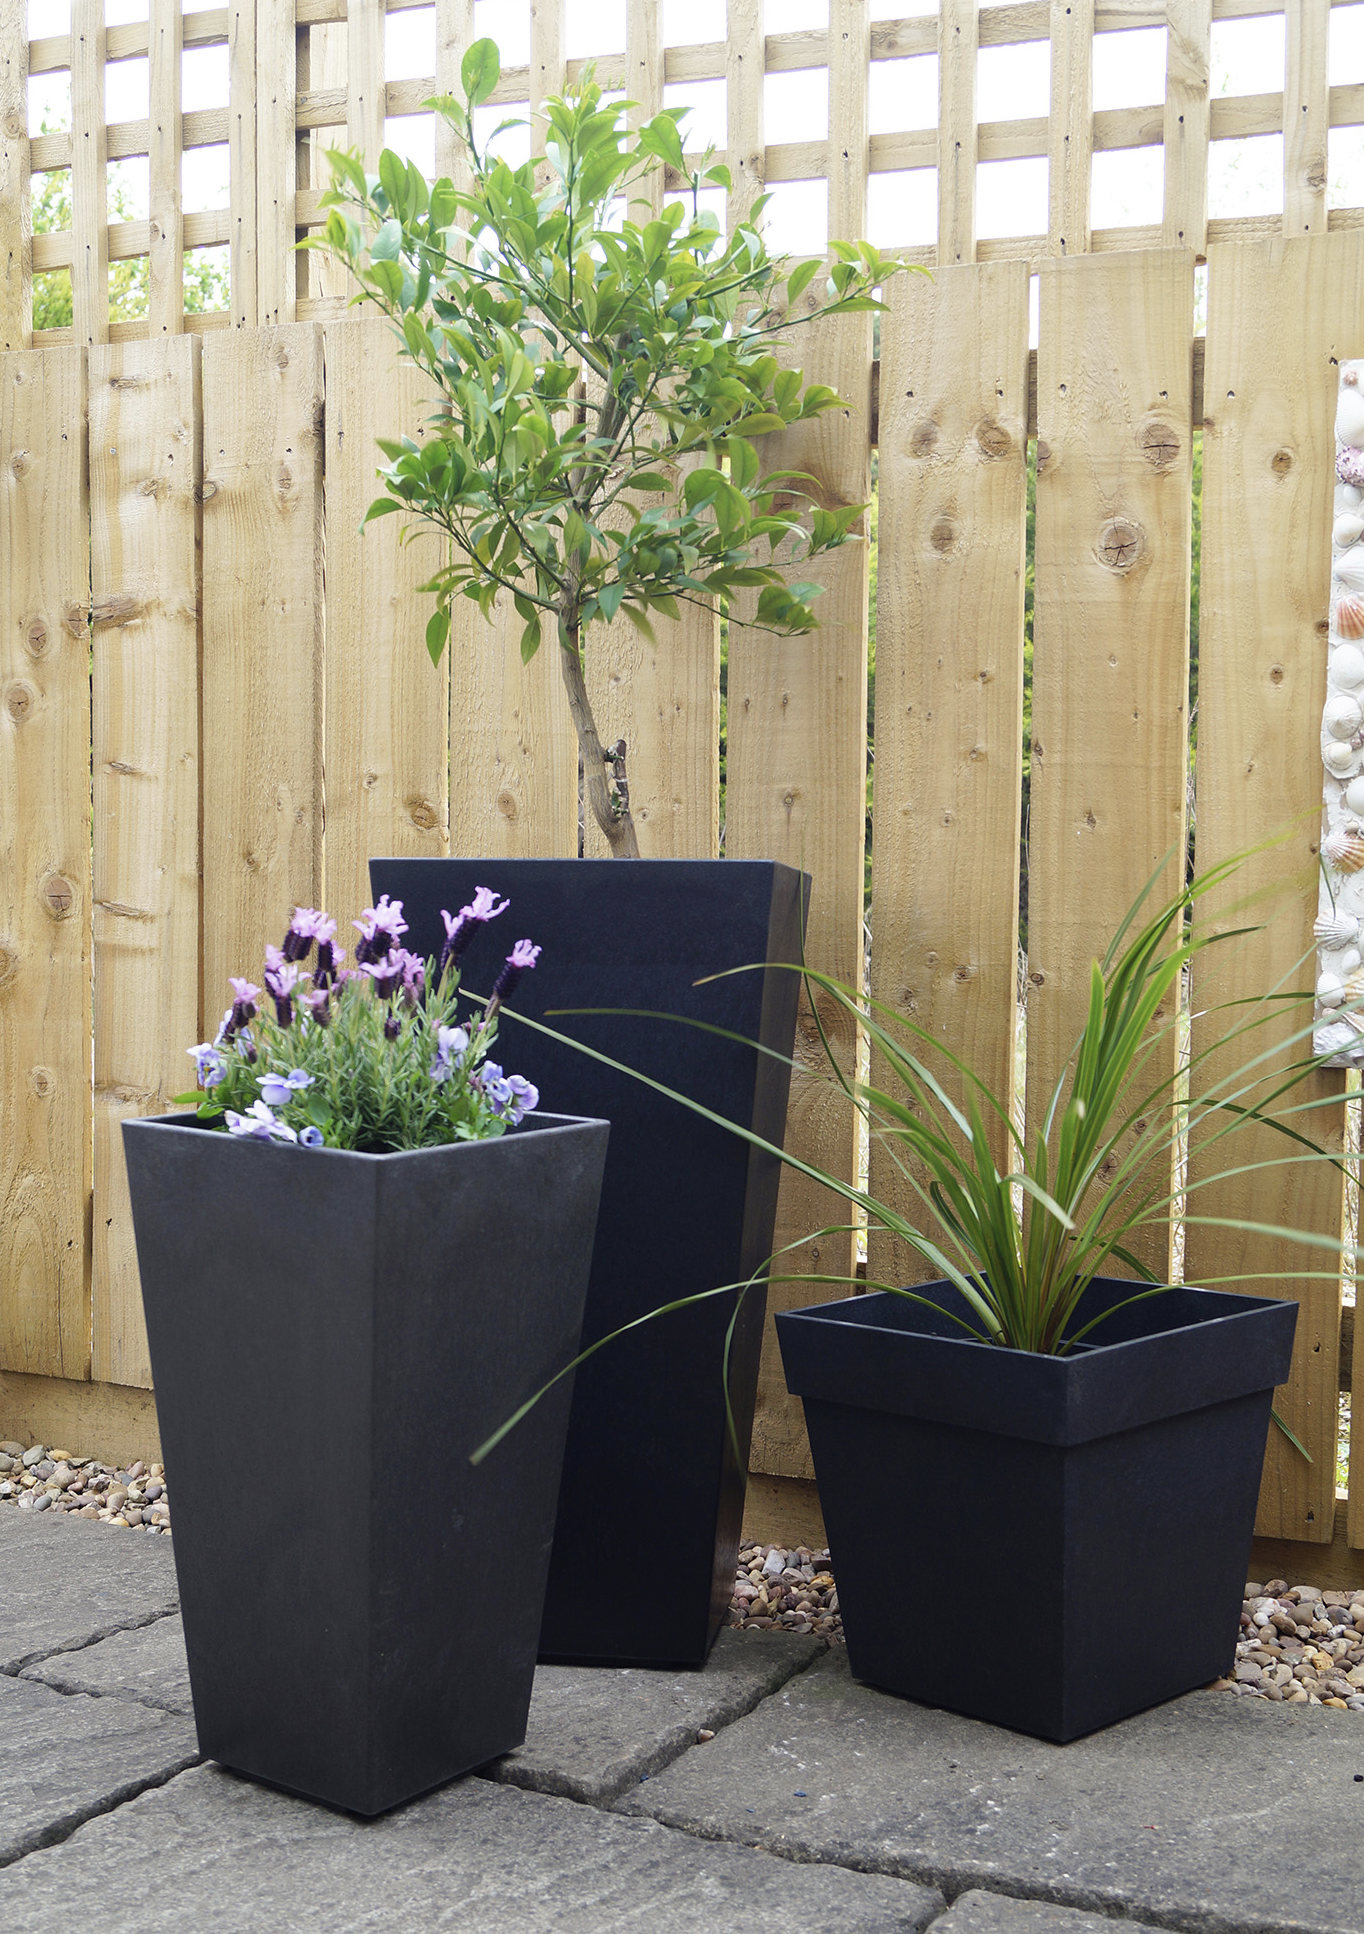 Recycled rubber tyres make great planters